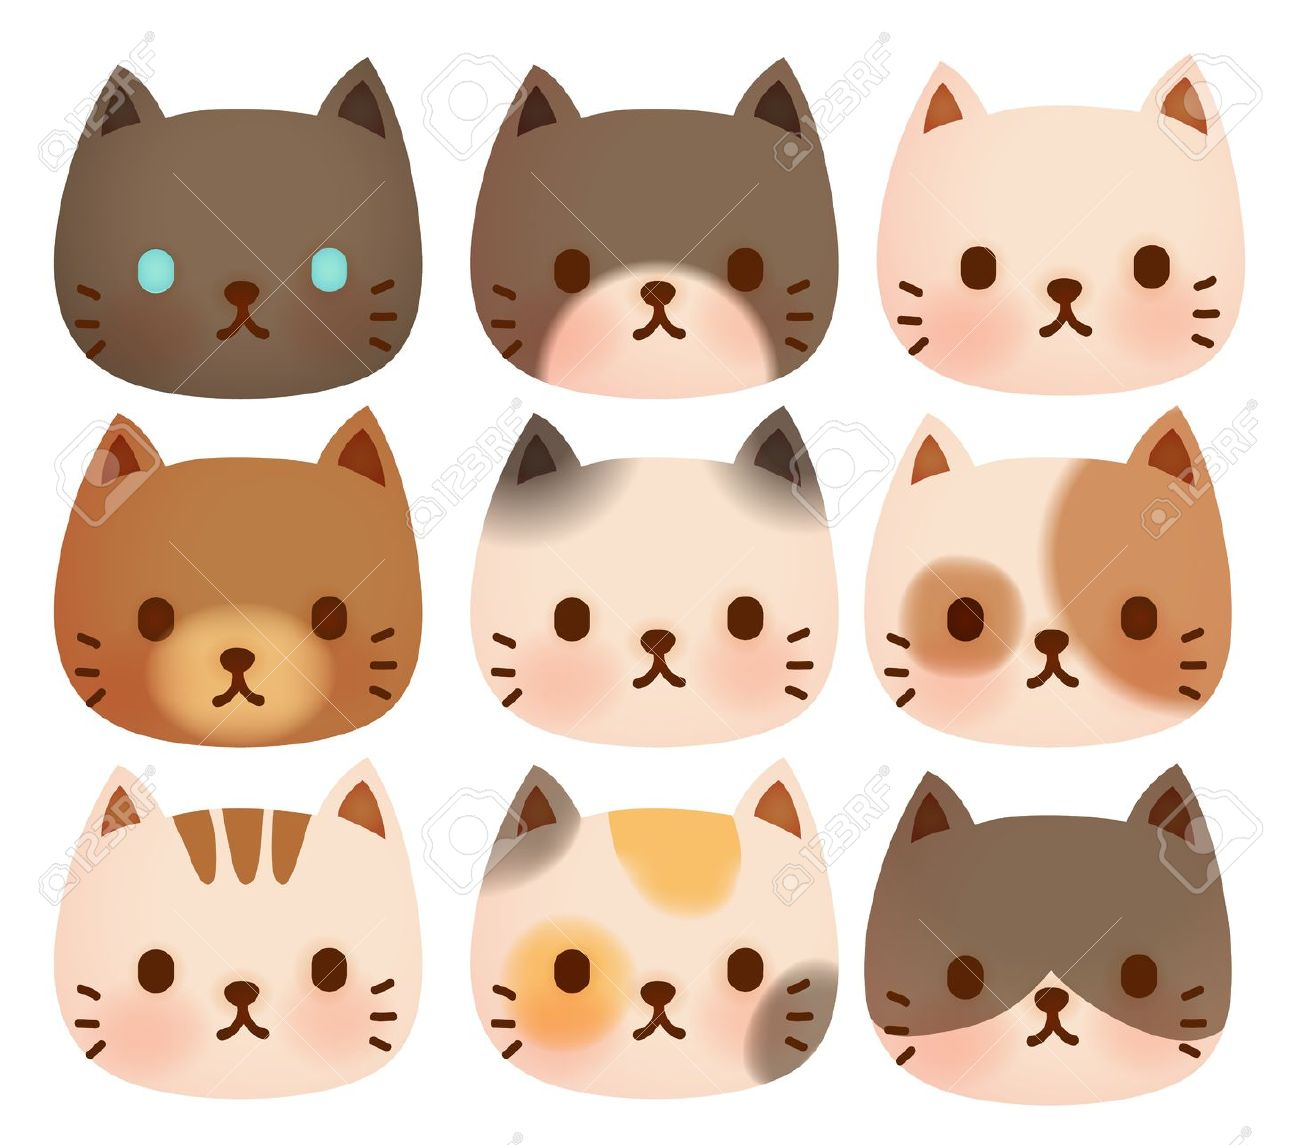 KITTENS clipart kitty face Cat Illustration Cat Royalty Free